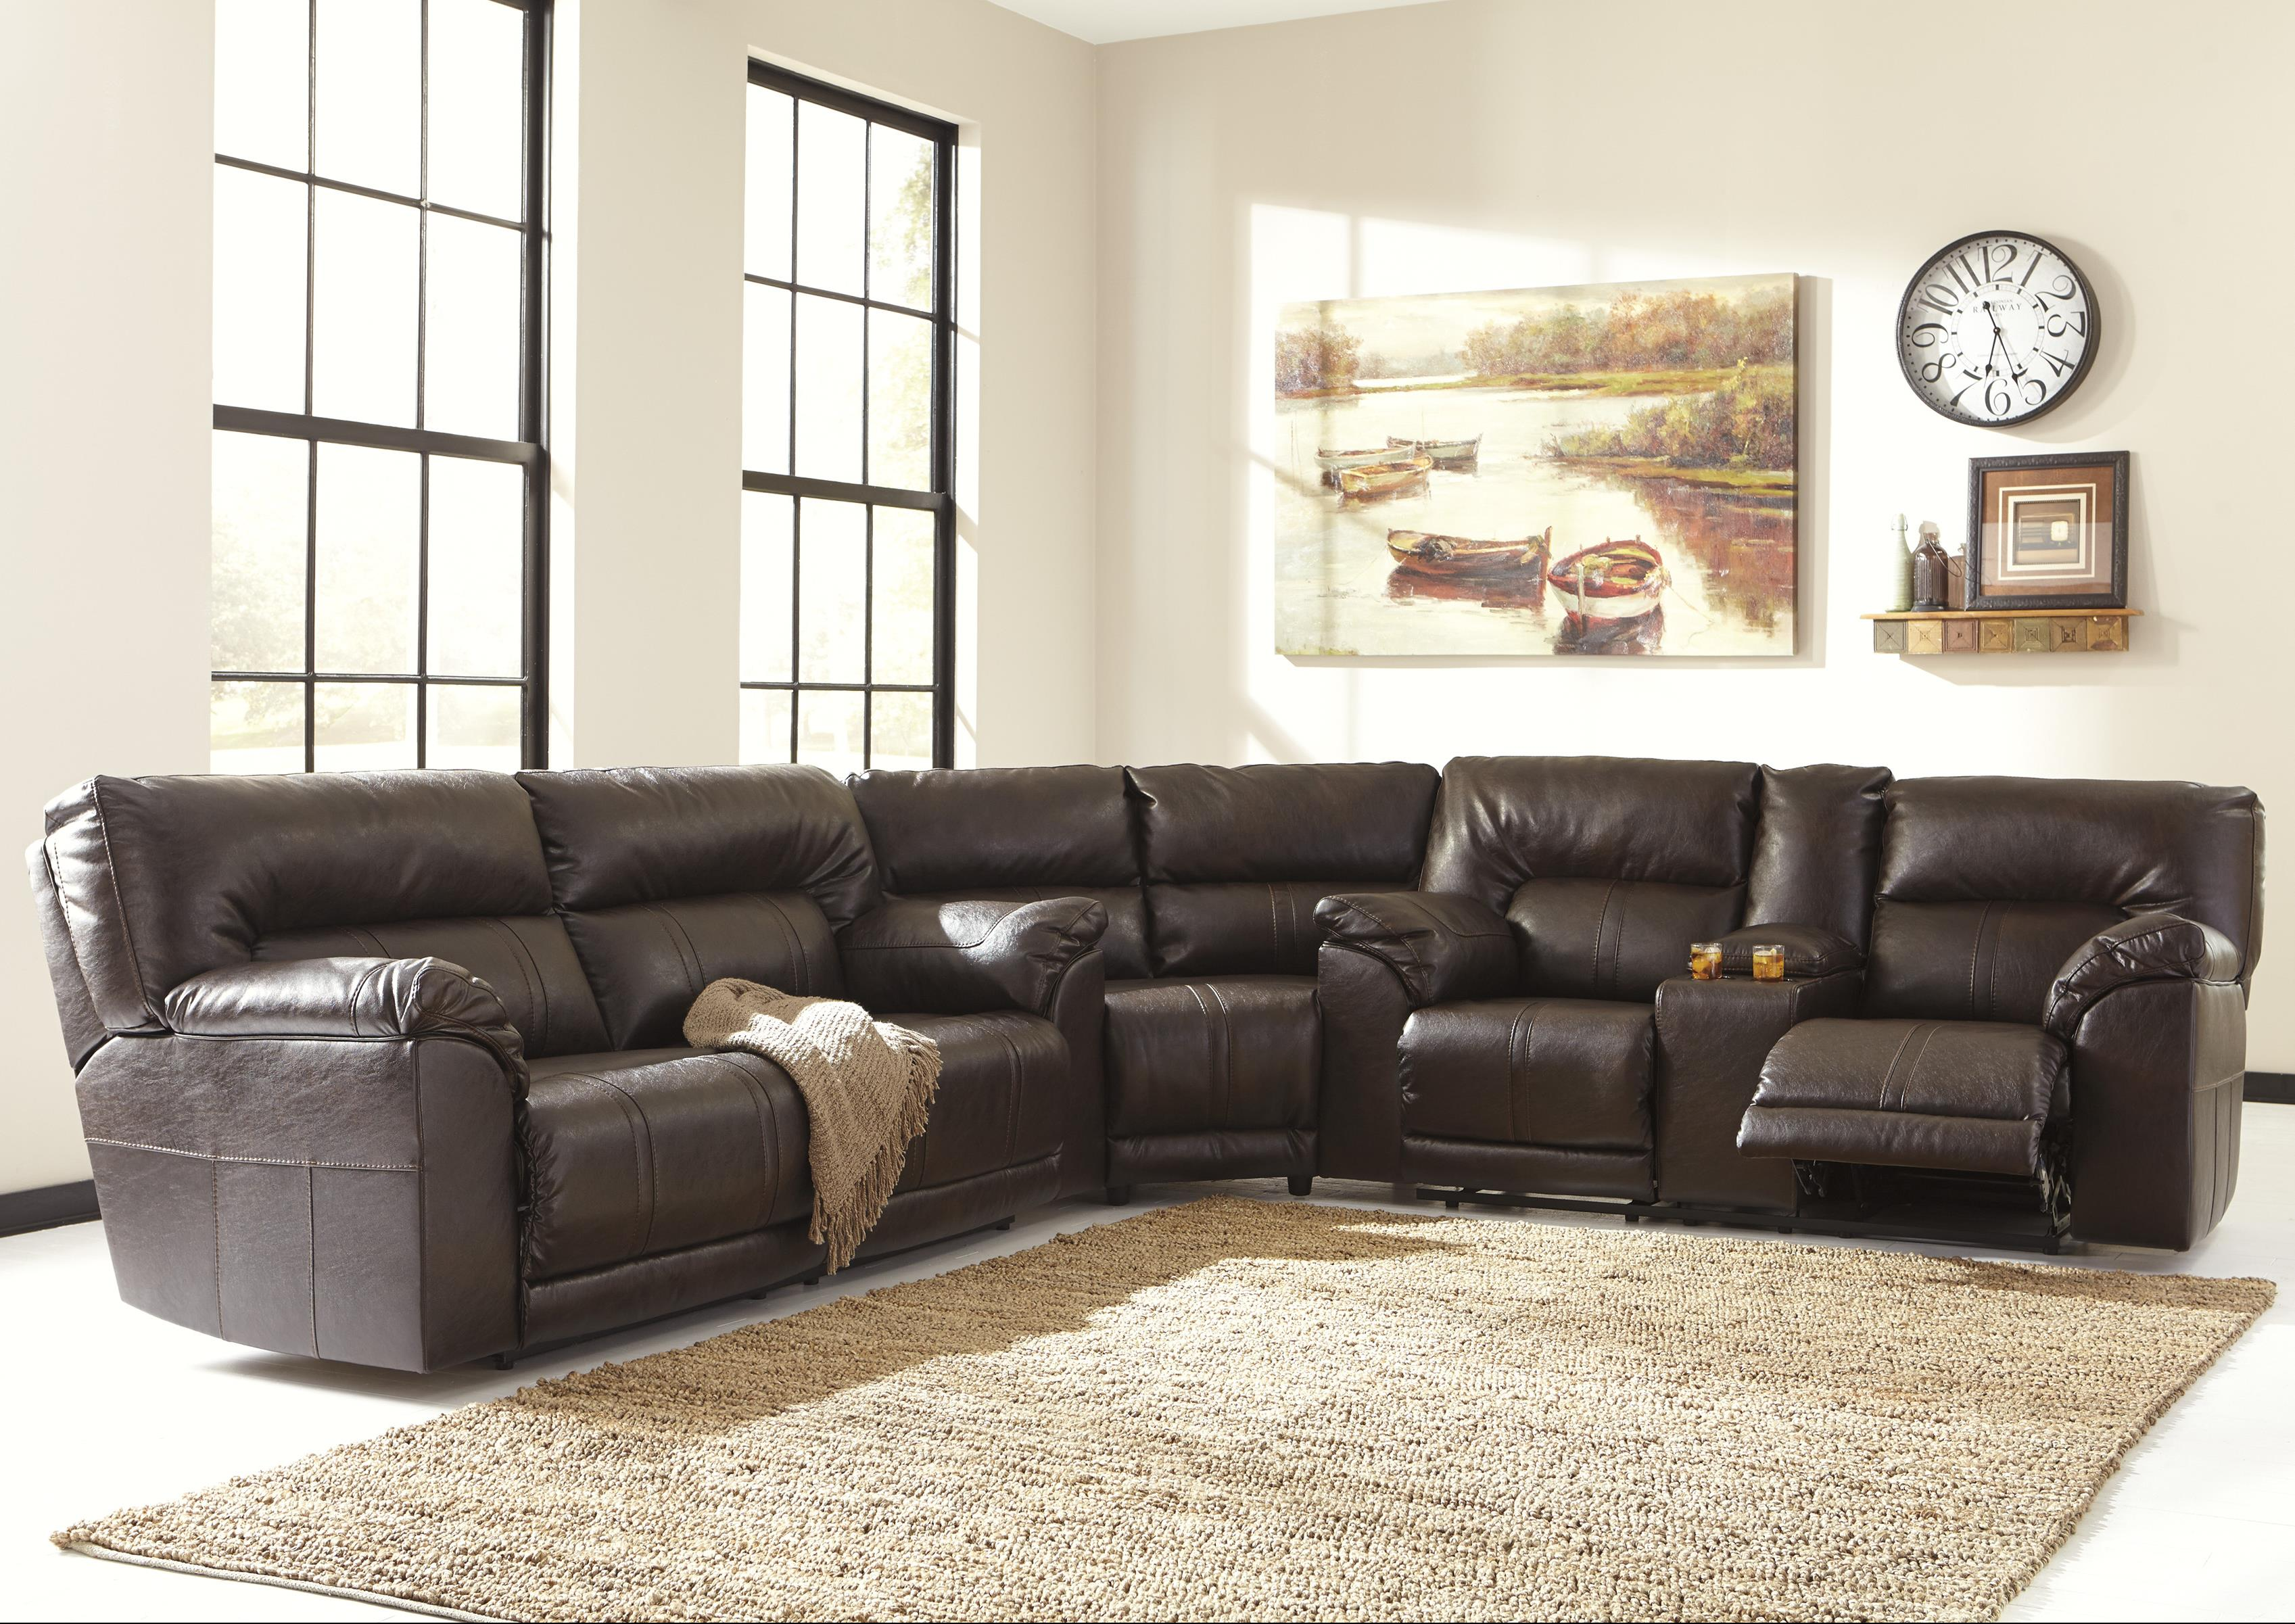 Benchcraft Barrettsville DuraBlend® 3-Piece Reclining Sectional - Item Number 4730181+77 : reclining sectional sofa - islam-shia.org